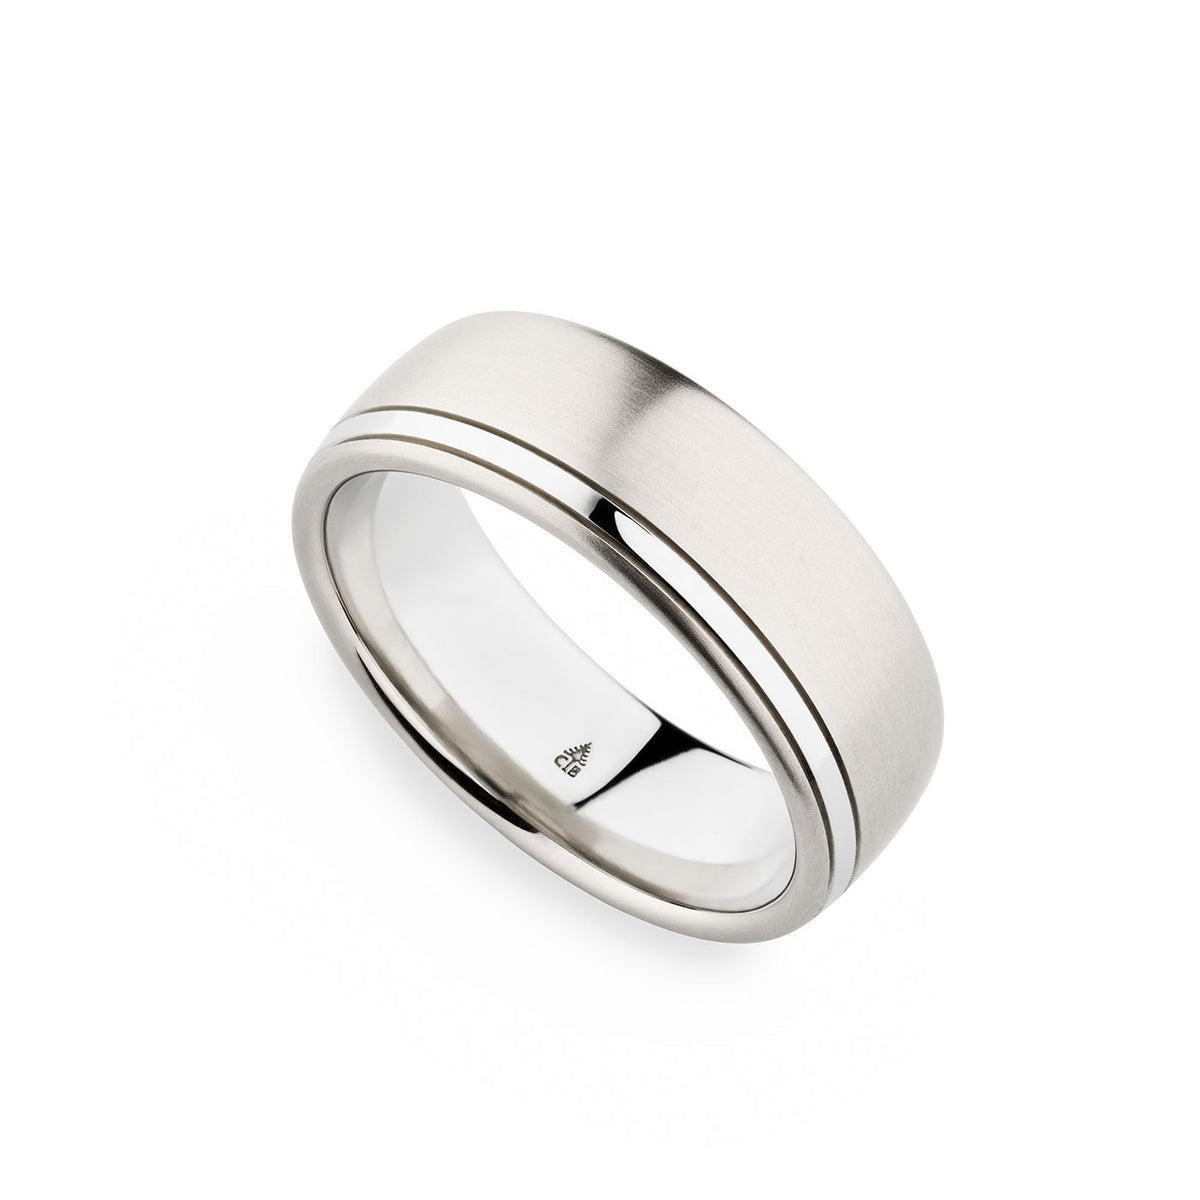 Palladium 7.5mm Brushed Polished Top Edge Band